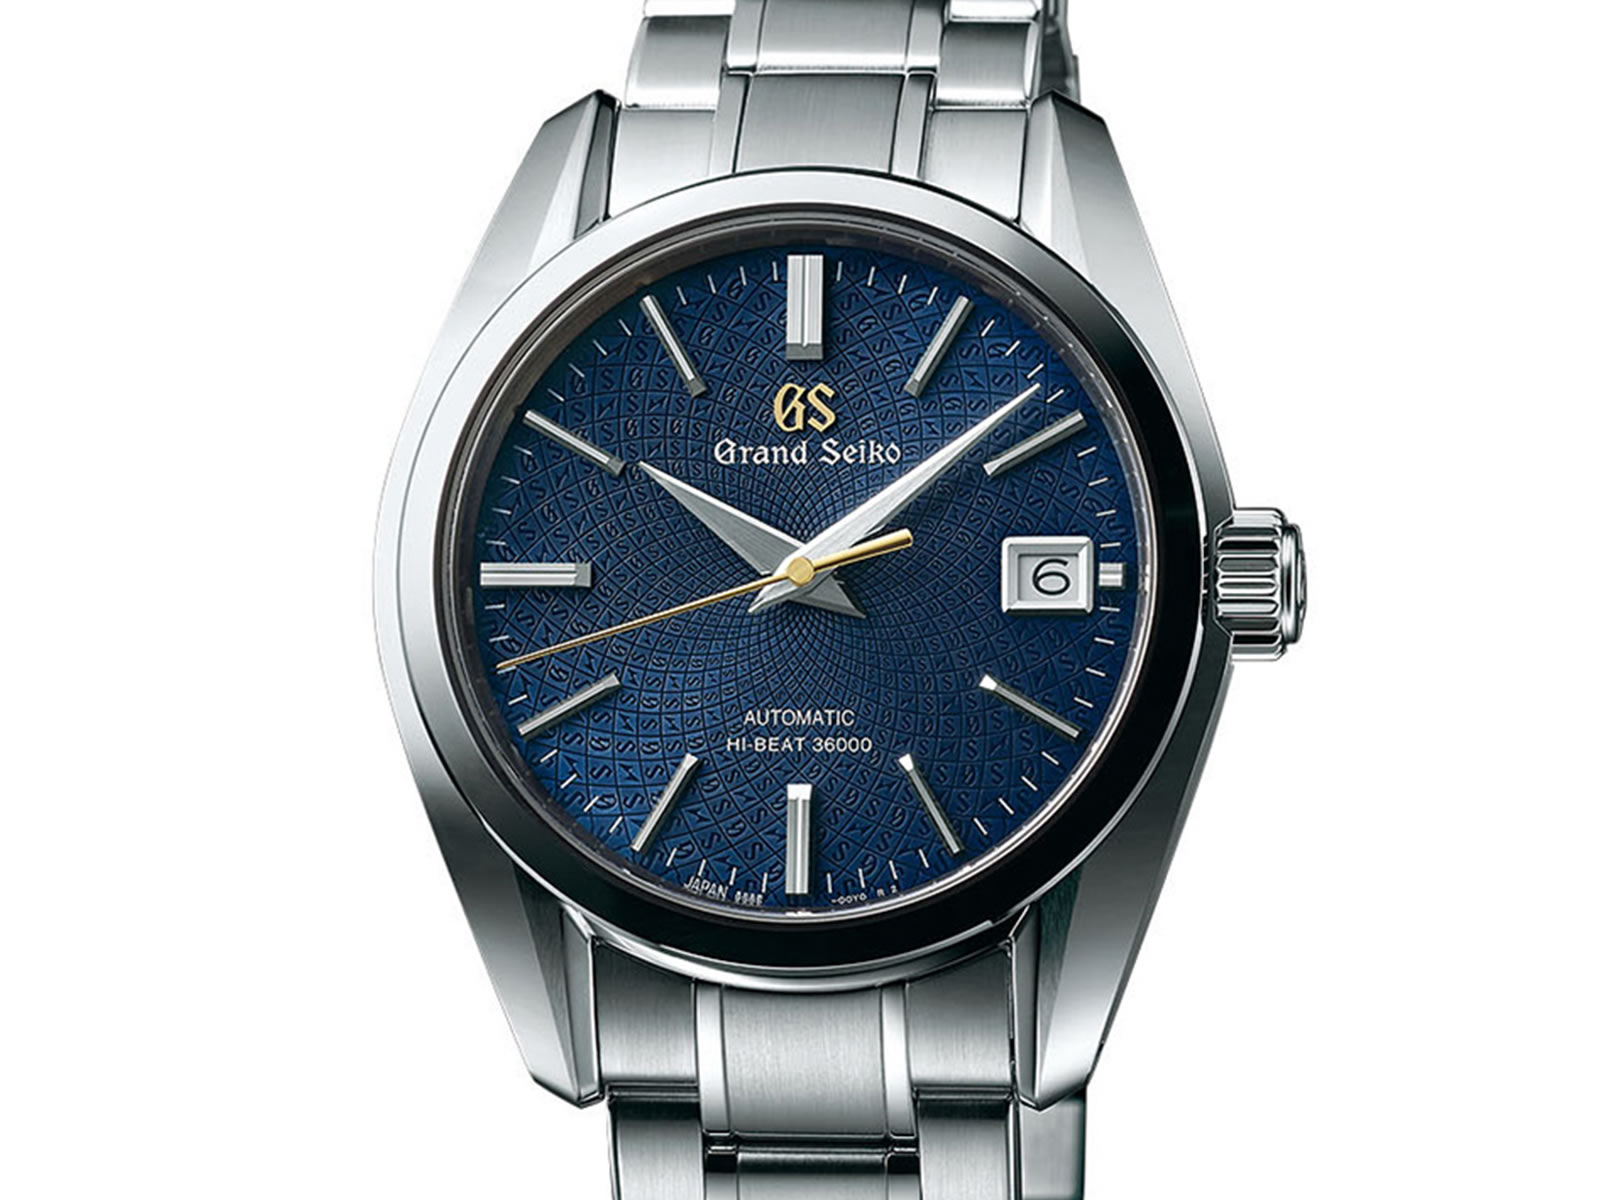 sbgh267-grand-seiko-hi-beat-36000-4-.jpg